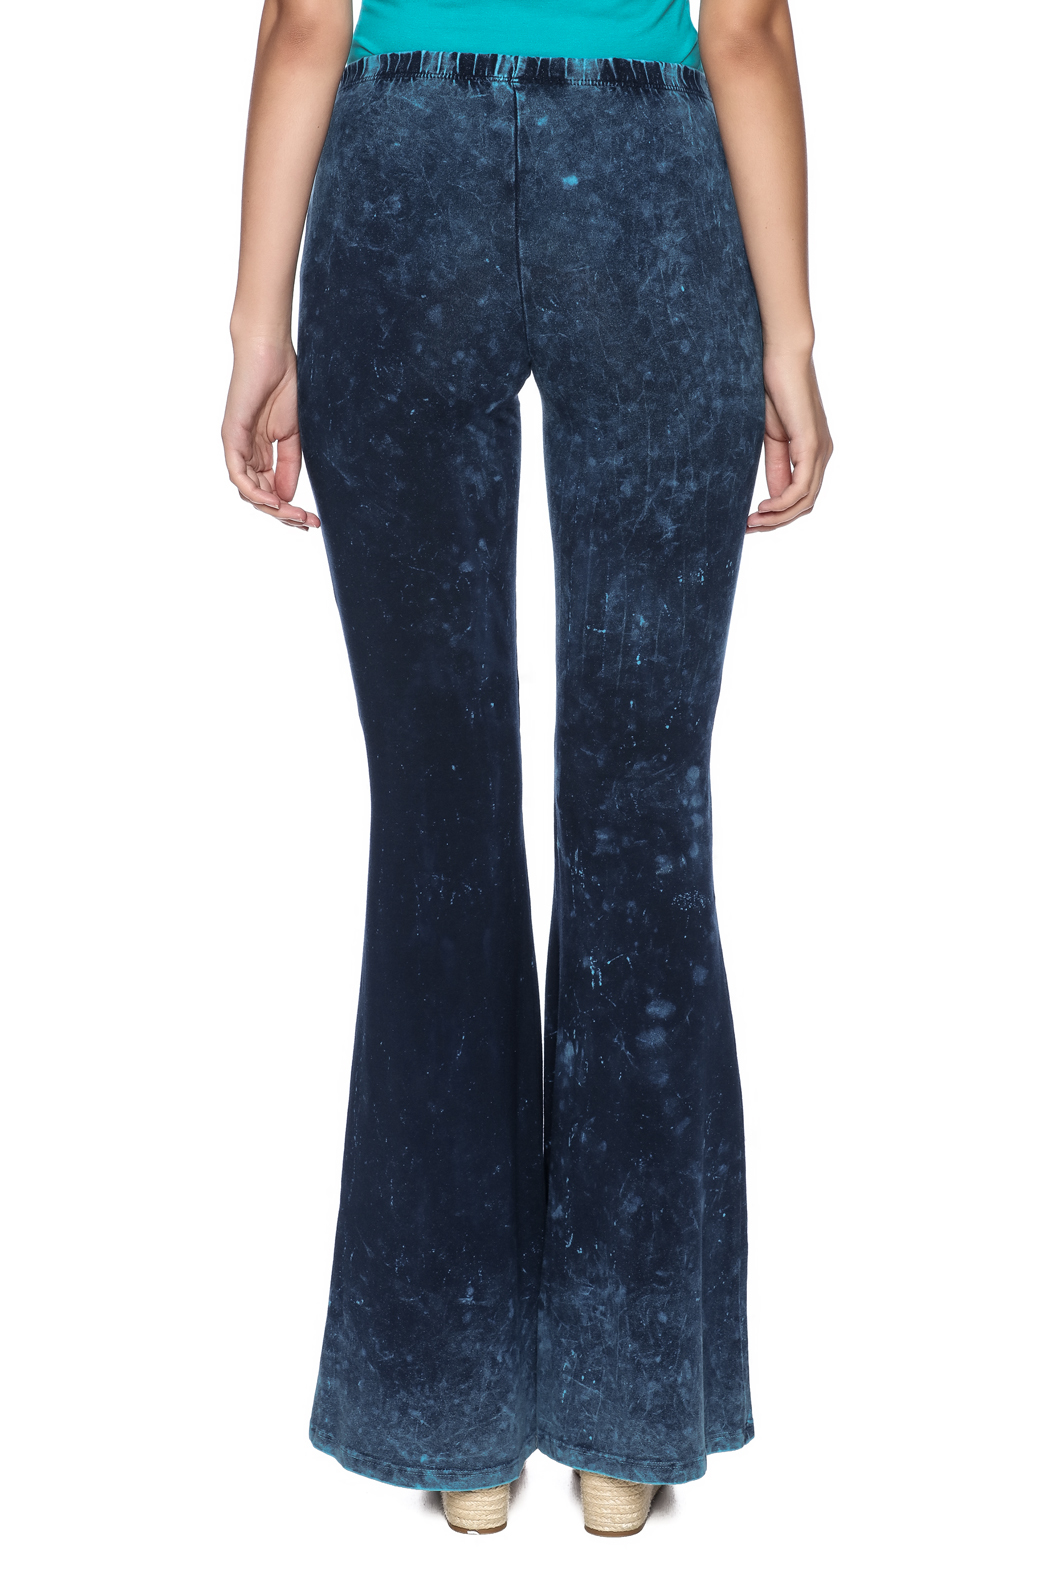 Chatoyant  Galaxy Bell Bottoms - Back Cropped Image